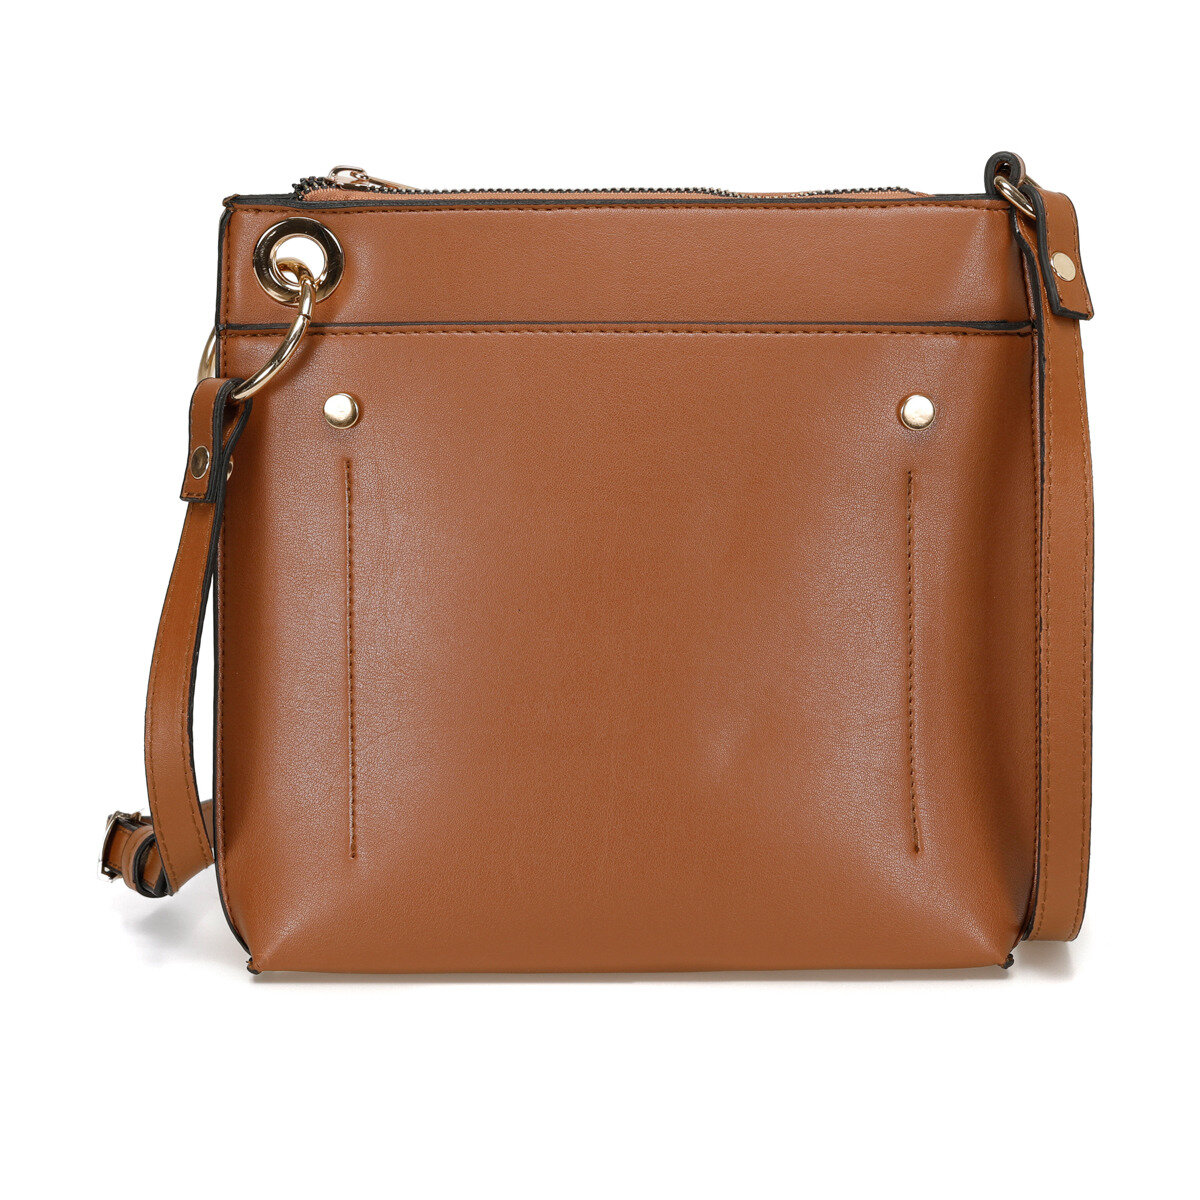 FLO 91.960. 702.C Tan Women Messenger Bag Polaris